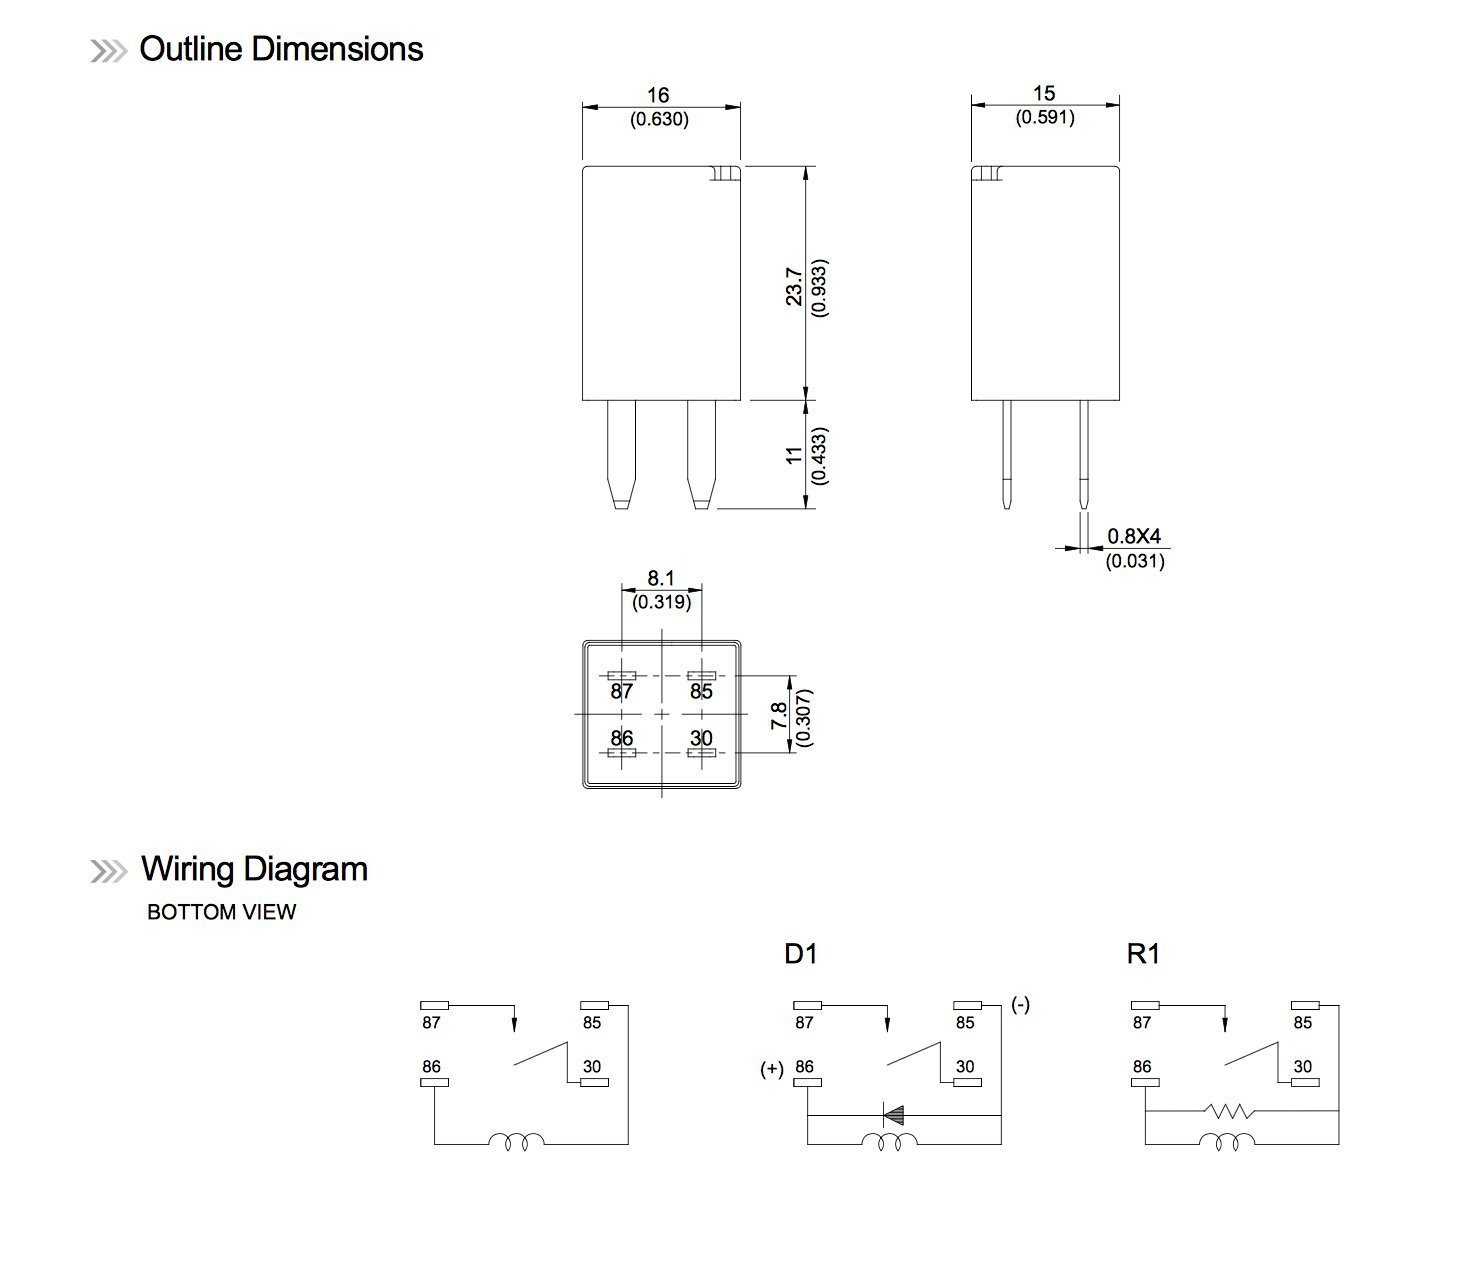 2011 Polaris Cooling Fan Relay Wiring Diagram | Wiring Liry on wwf wiper motor diagram, 2005 bobcat s185 windshield wioer motor diagram, wiper wiring hi-low, ford wiper motor diagram, circuit diagram, briggs and stratton electrical diagram, wiper motor cover, wiper motor toyota, front bumper assembly diagram, solenoid switch diagram, wiper switch diagram, wiper motor cable, gm wiper motor diagram, wiper motor parts, vacuum wipers diagram, wiper washer motor, wiper motor wire, wiper motor relay diagram, wiper motor power supply, windshield wiper motor diagram,